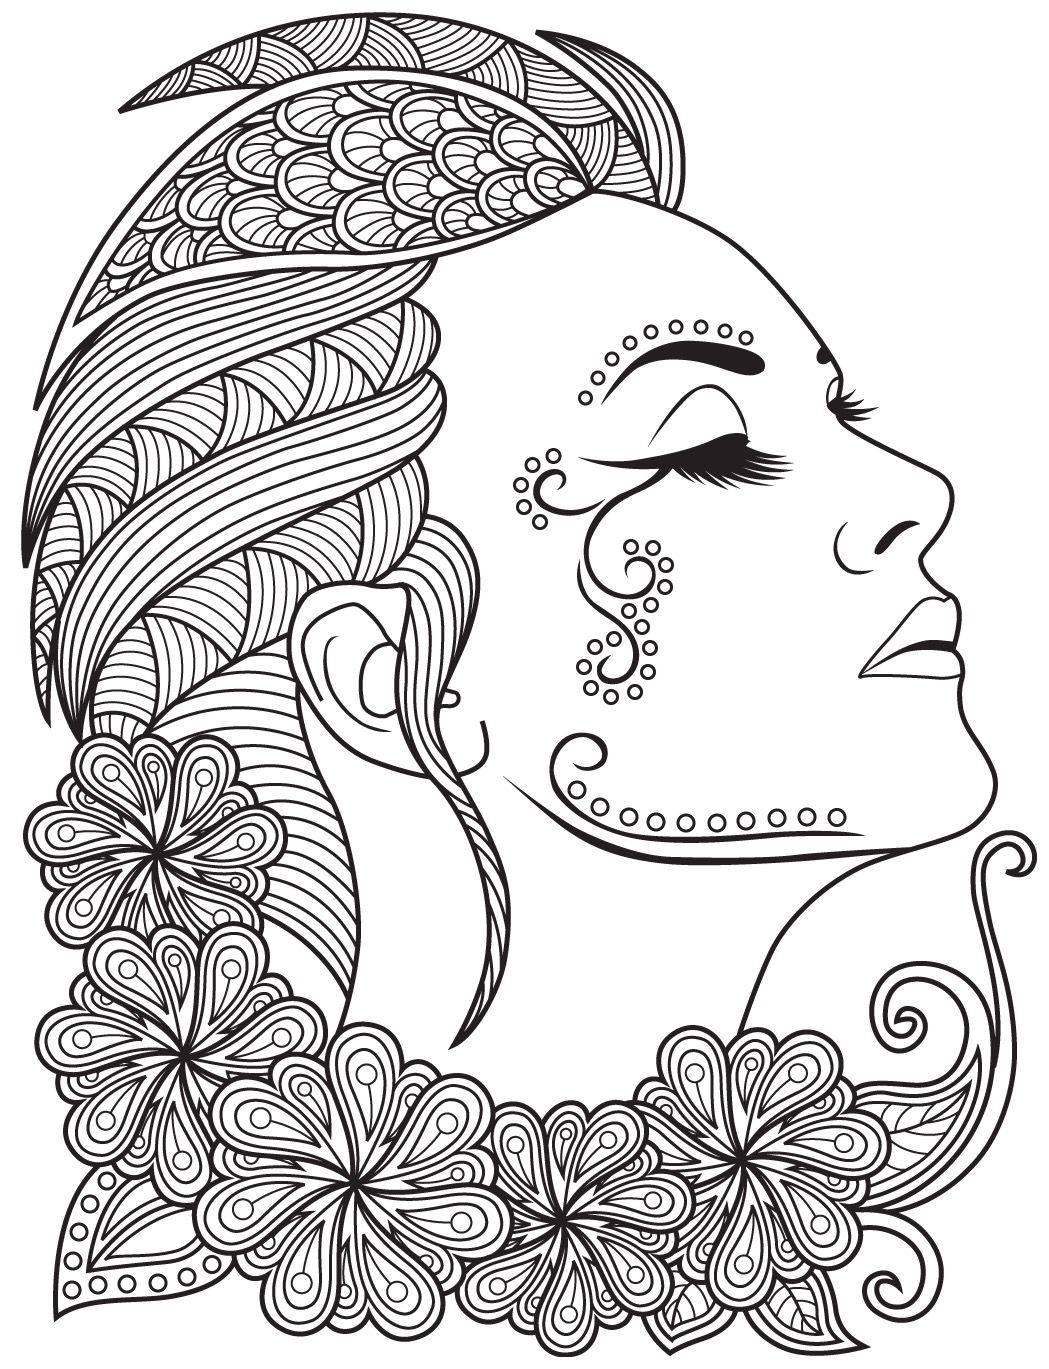 Women faces to color colorish free coloring app for adults by goodsofttech